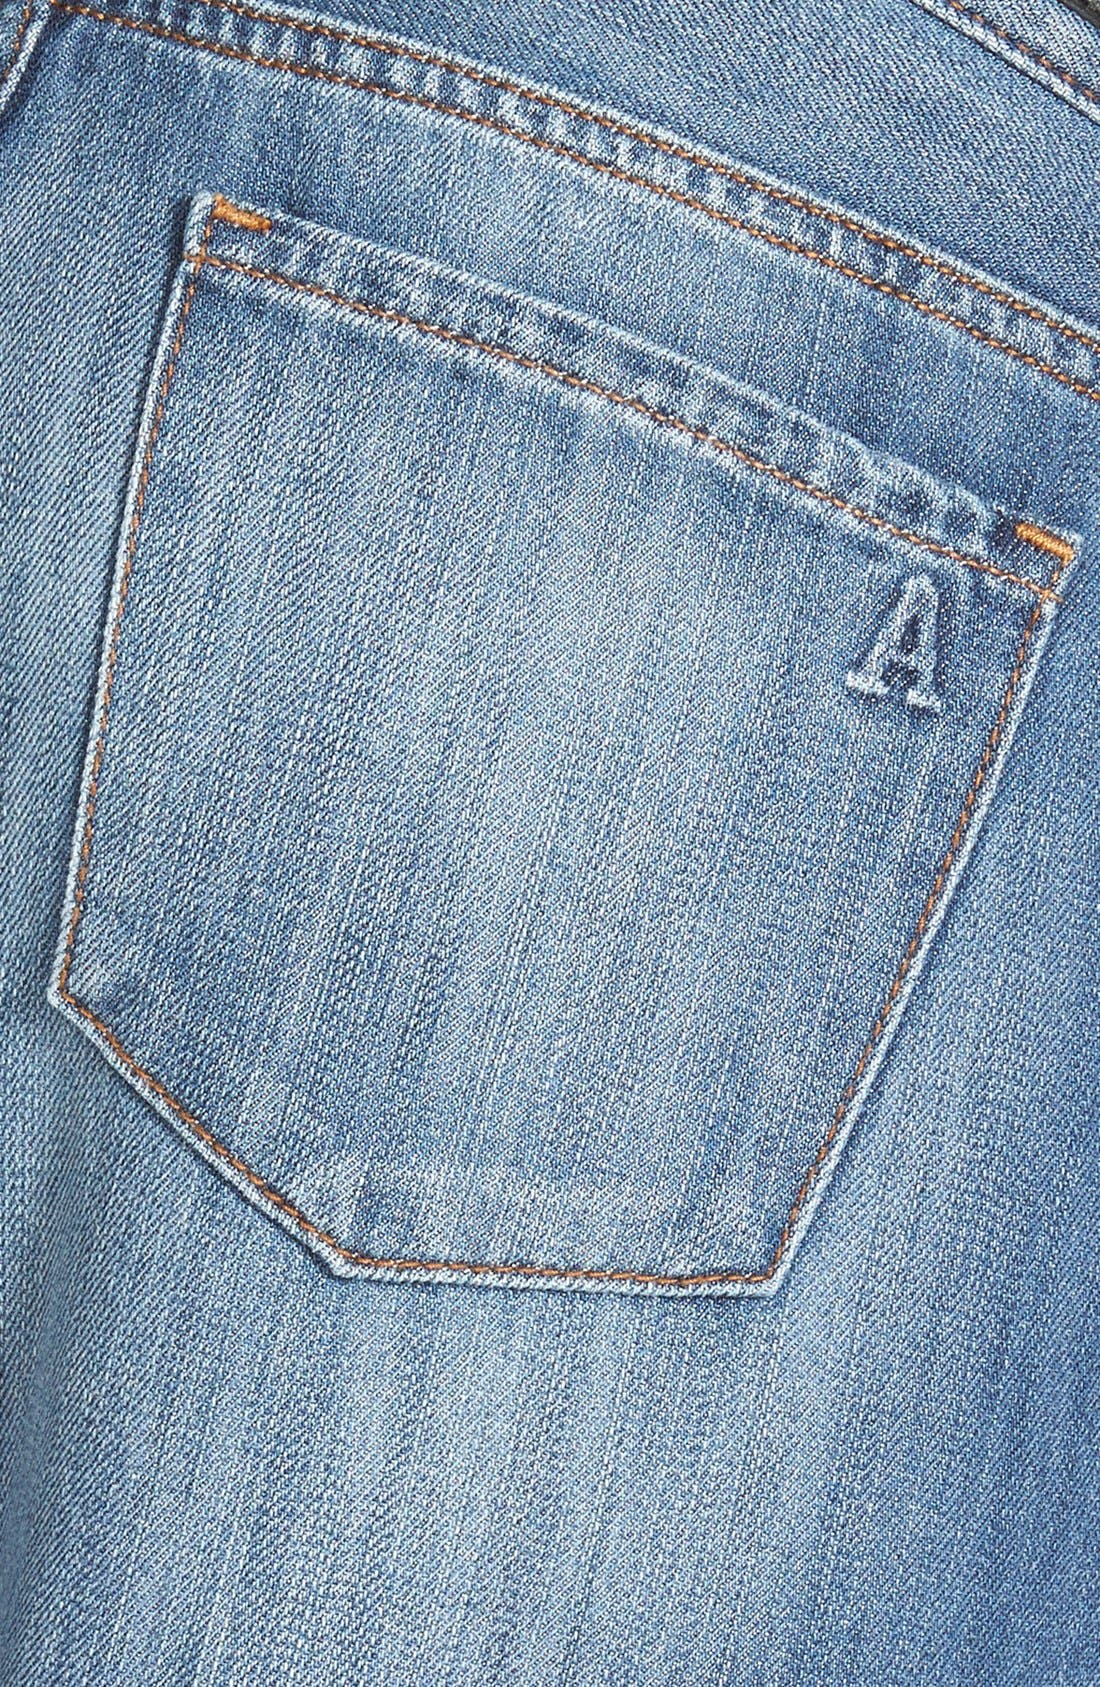 Alternate Image 3  - Articles of Society 'Cindy' Boyfriend Jeans (Medium Wash)